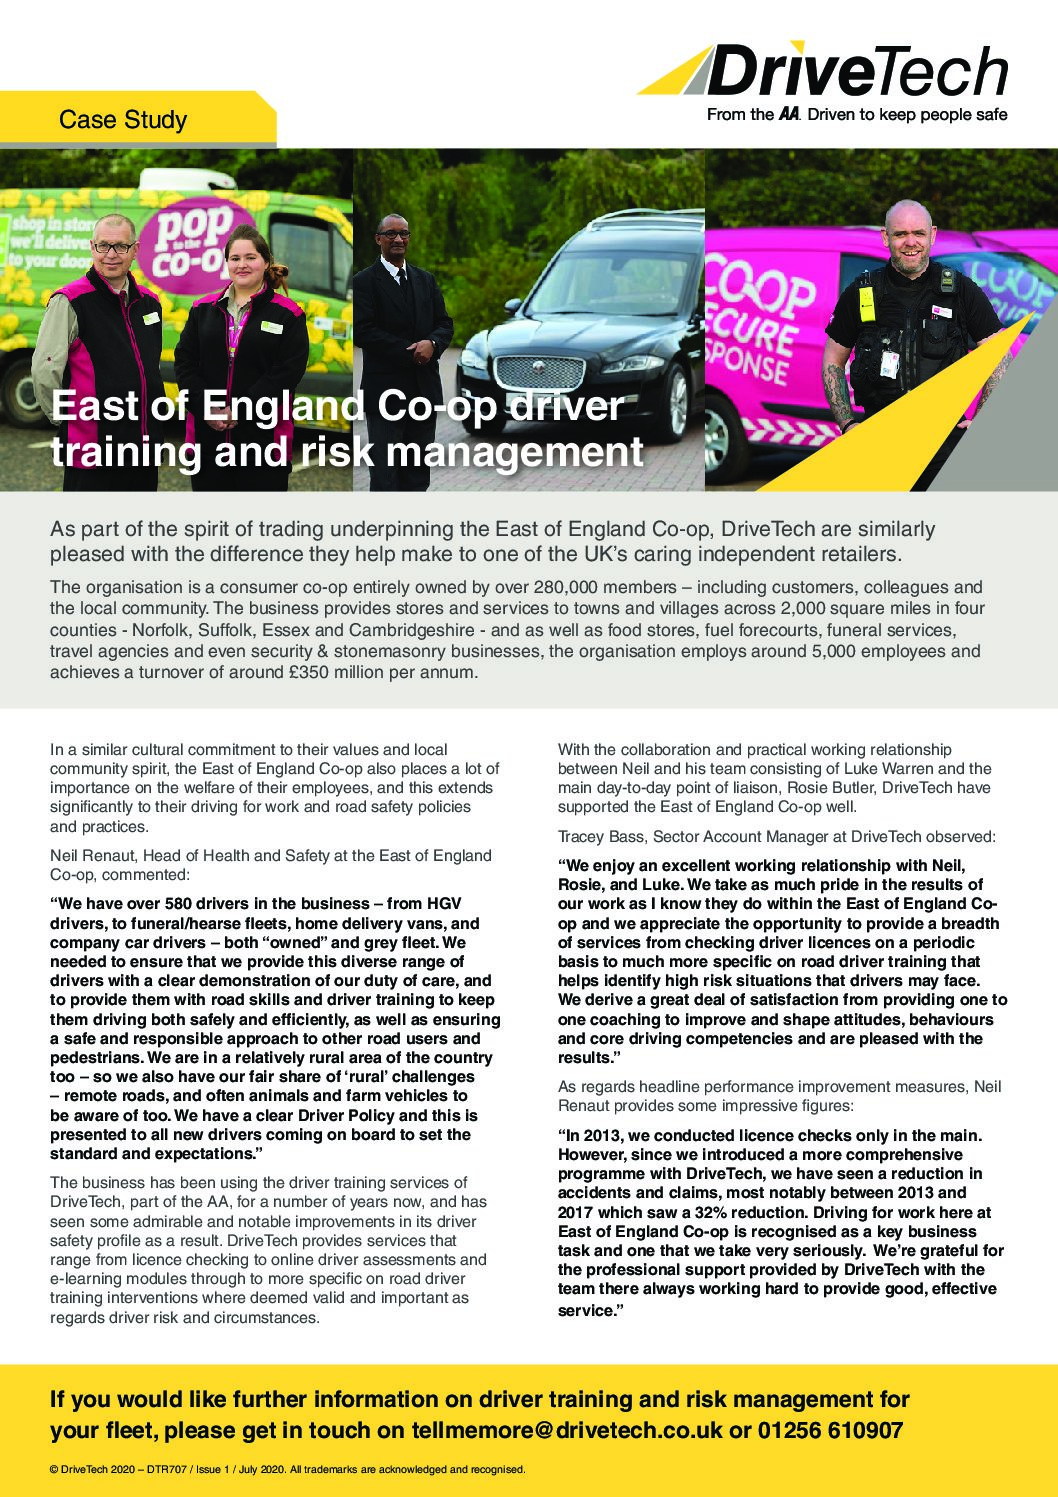 East of England Co-op Case Study – Driver Training & Risk Management